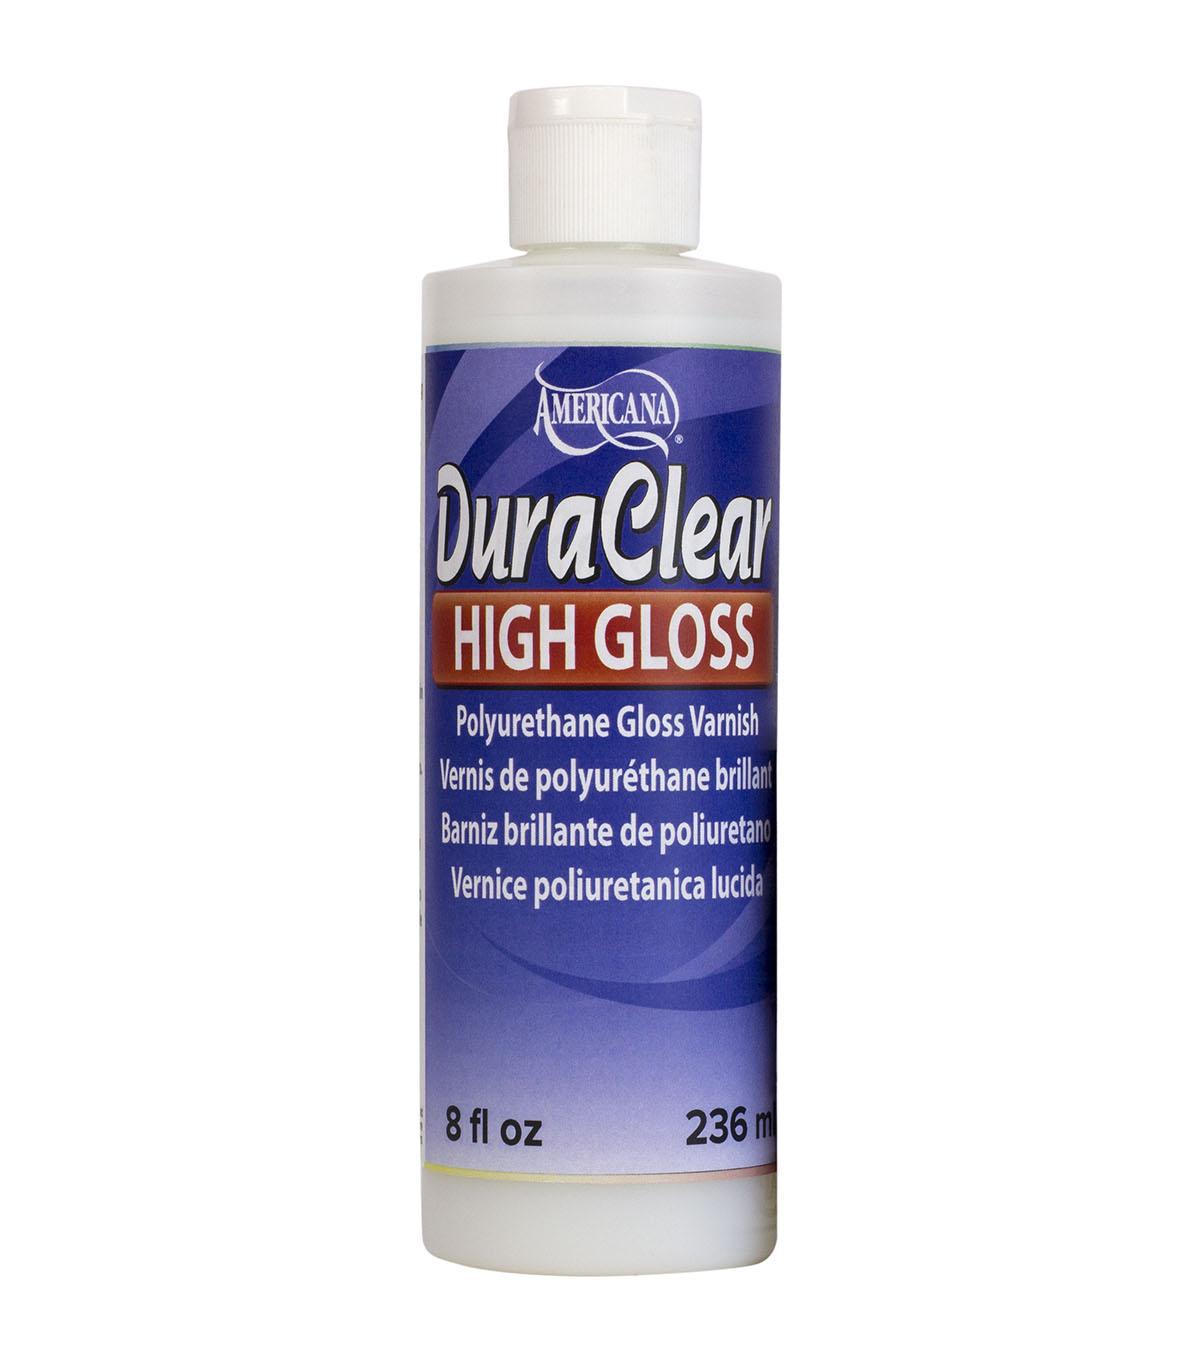 DecoArt Americana DuraClear 8 fl. oz. High Gloss Varnish